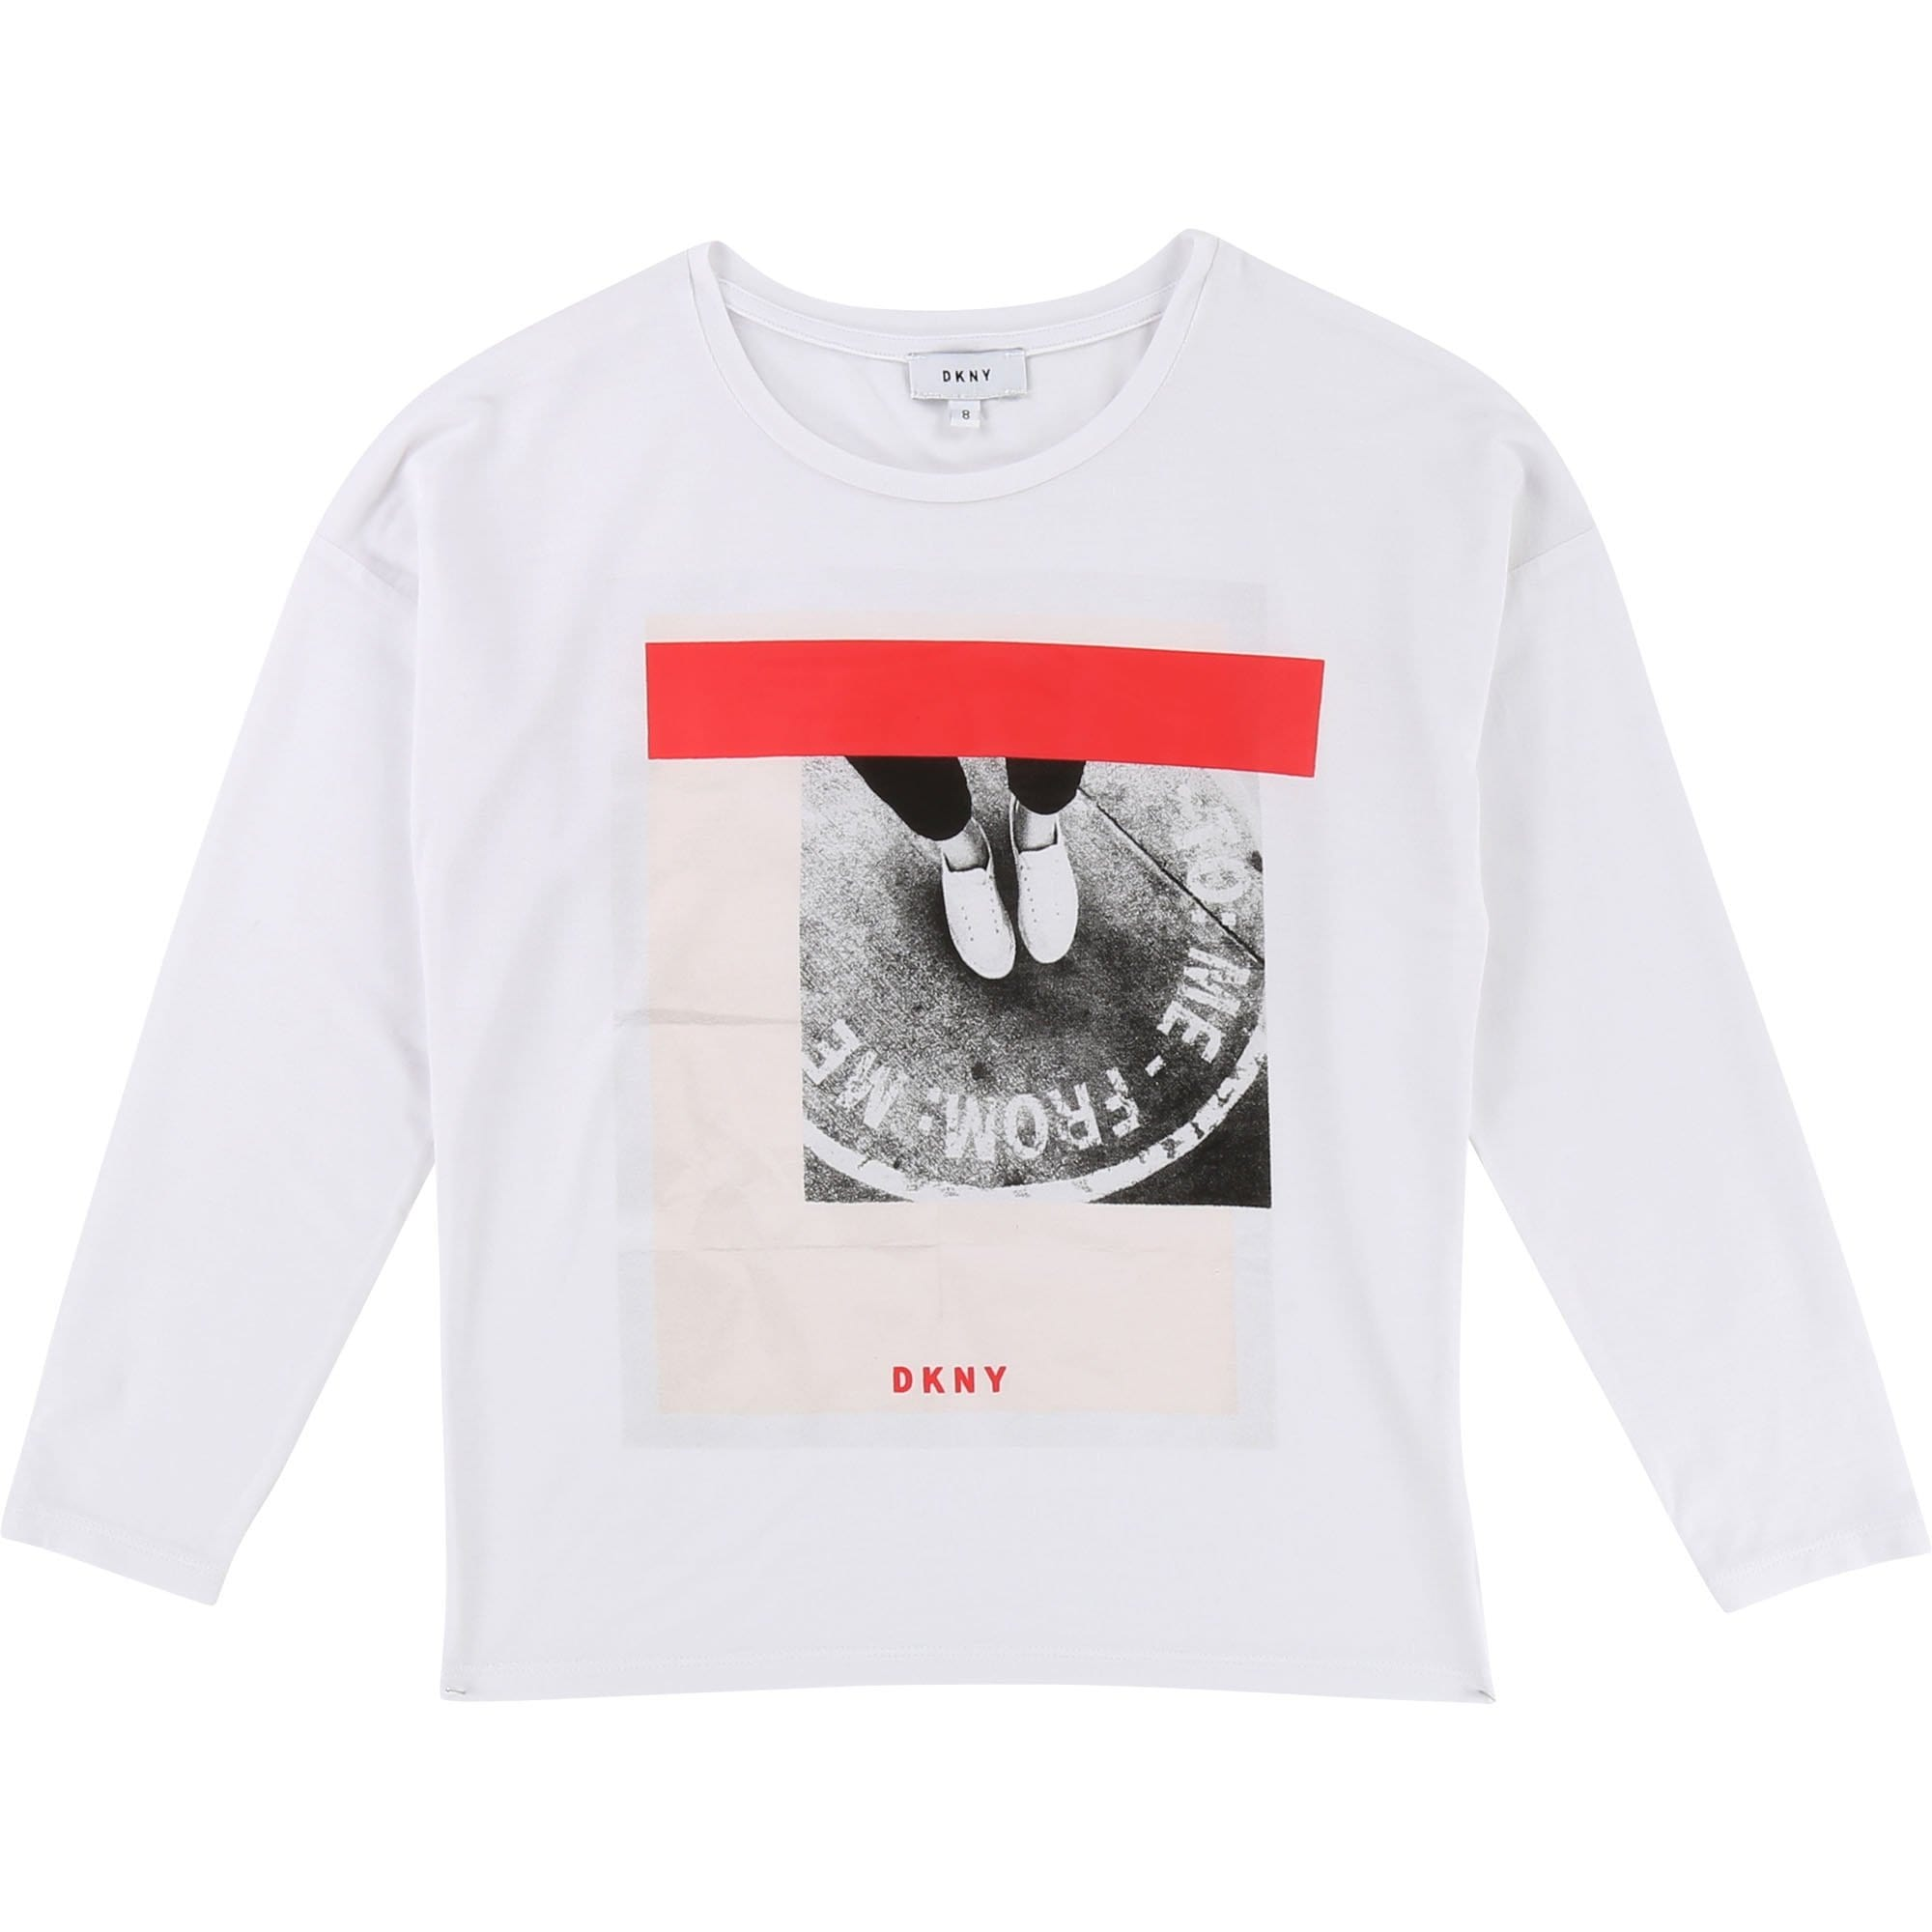 DKNY Girls Long Sleeve Printed T-Shirt (4716617924739)